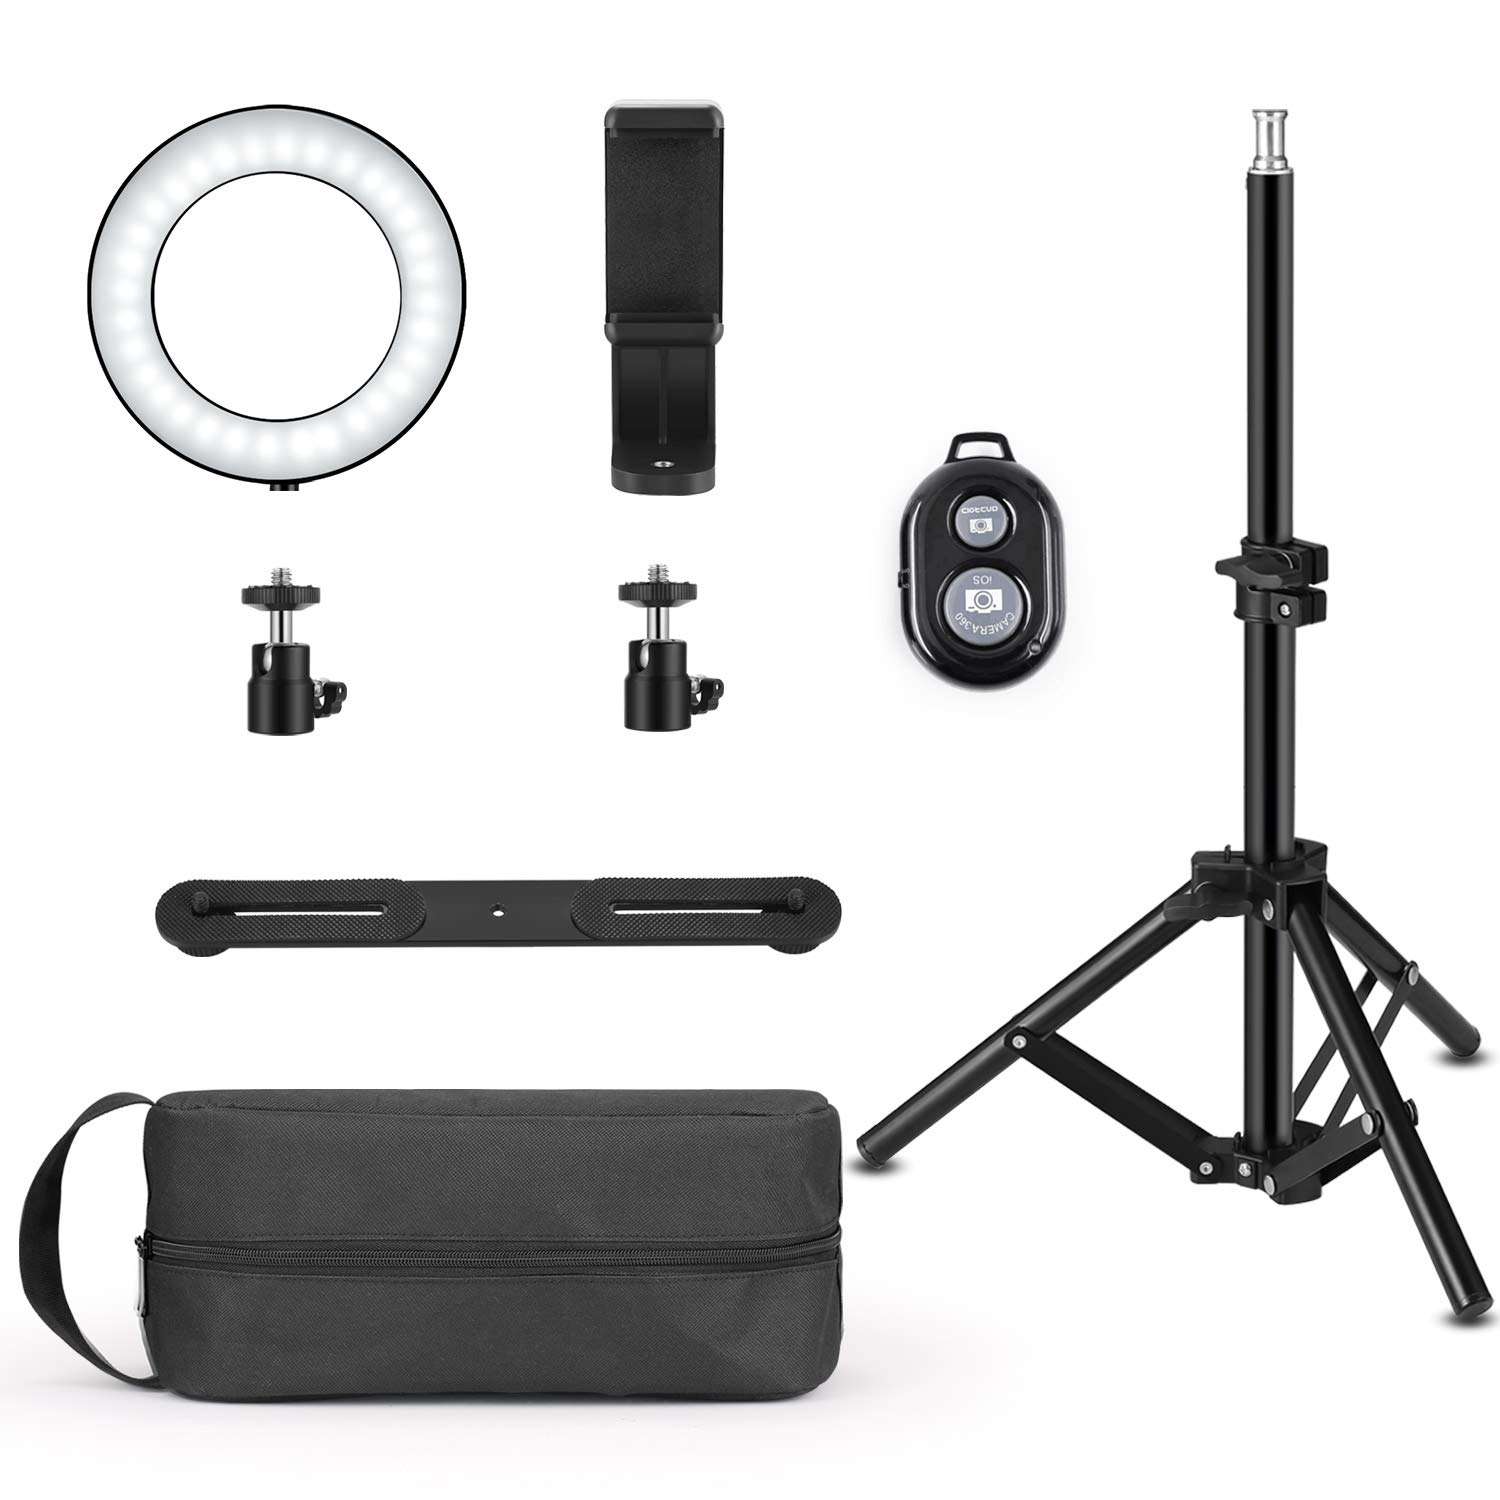 Ring Light with Stand, Foxin Selfie Ring Light with Tripod Stand & Cell Phone Holder Stand for Live Stream/Makeup, Mini LED Camera Light Desktop LED Lamp with 3 Light Modes & 11 Brightness Level by FOXIN (Image #5)